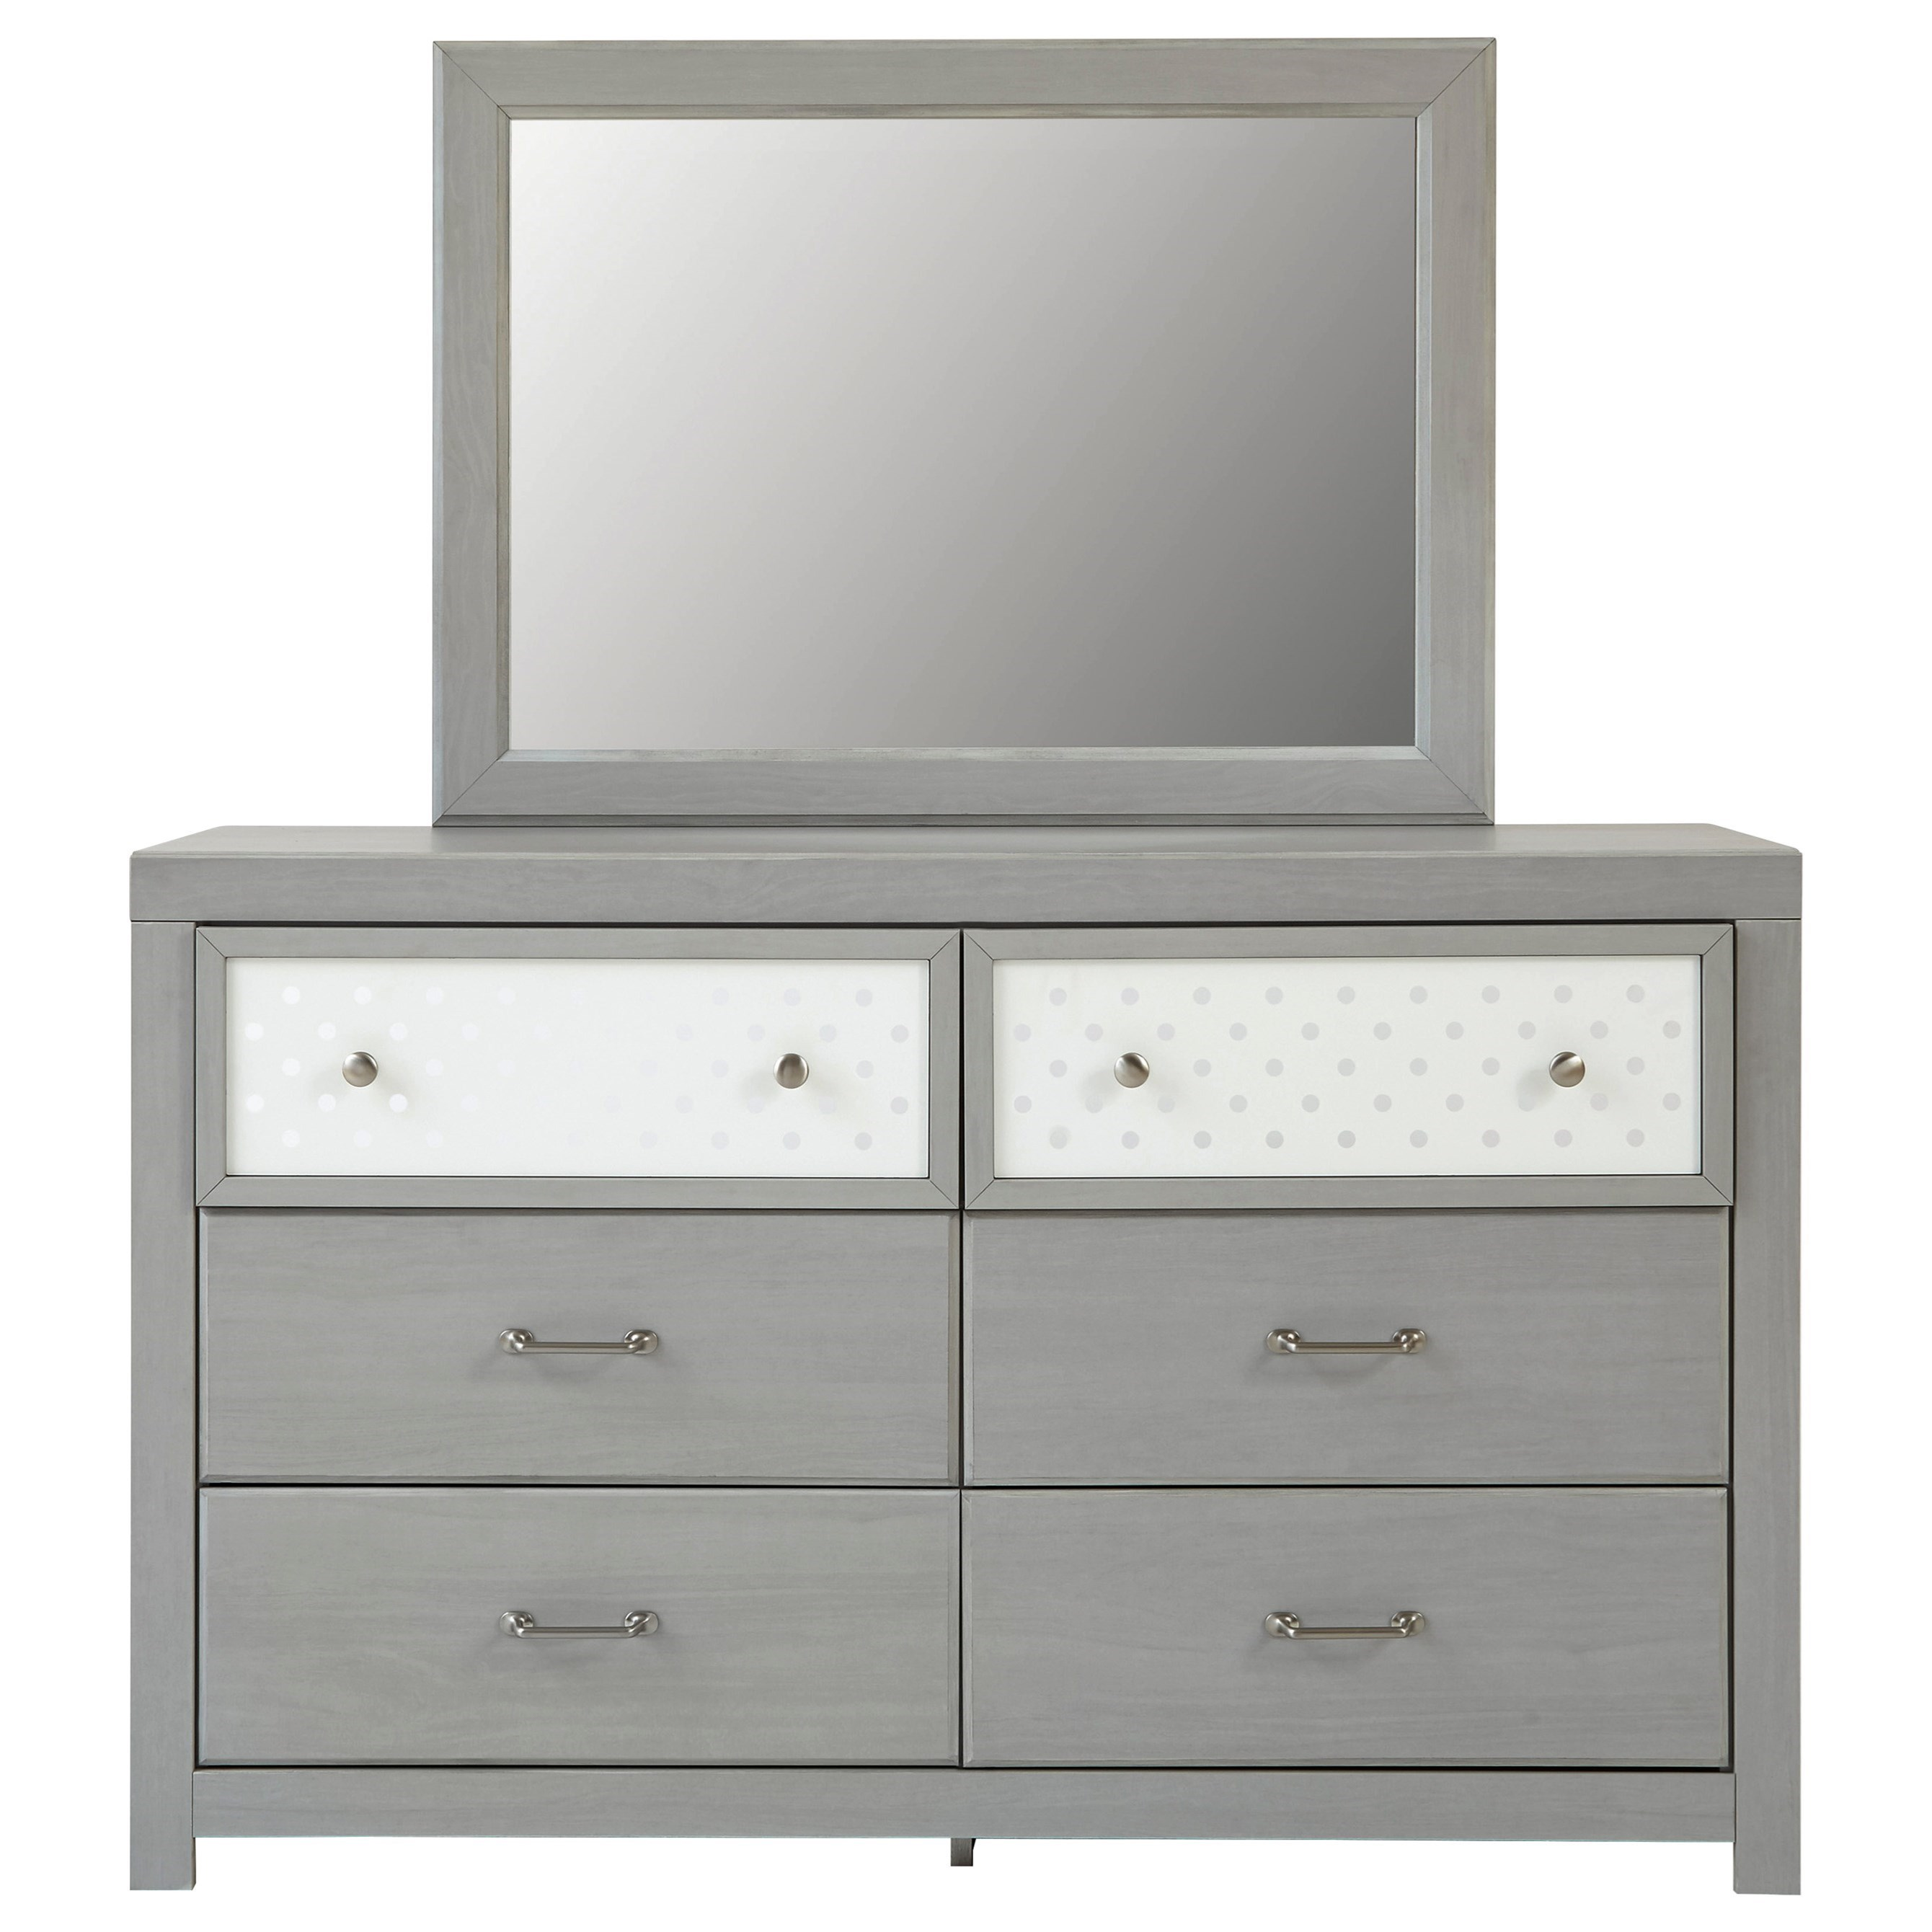 Dresser & Bedroom Mirror